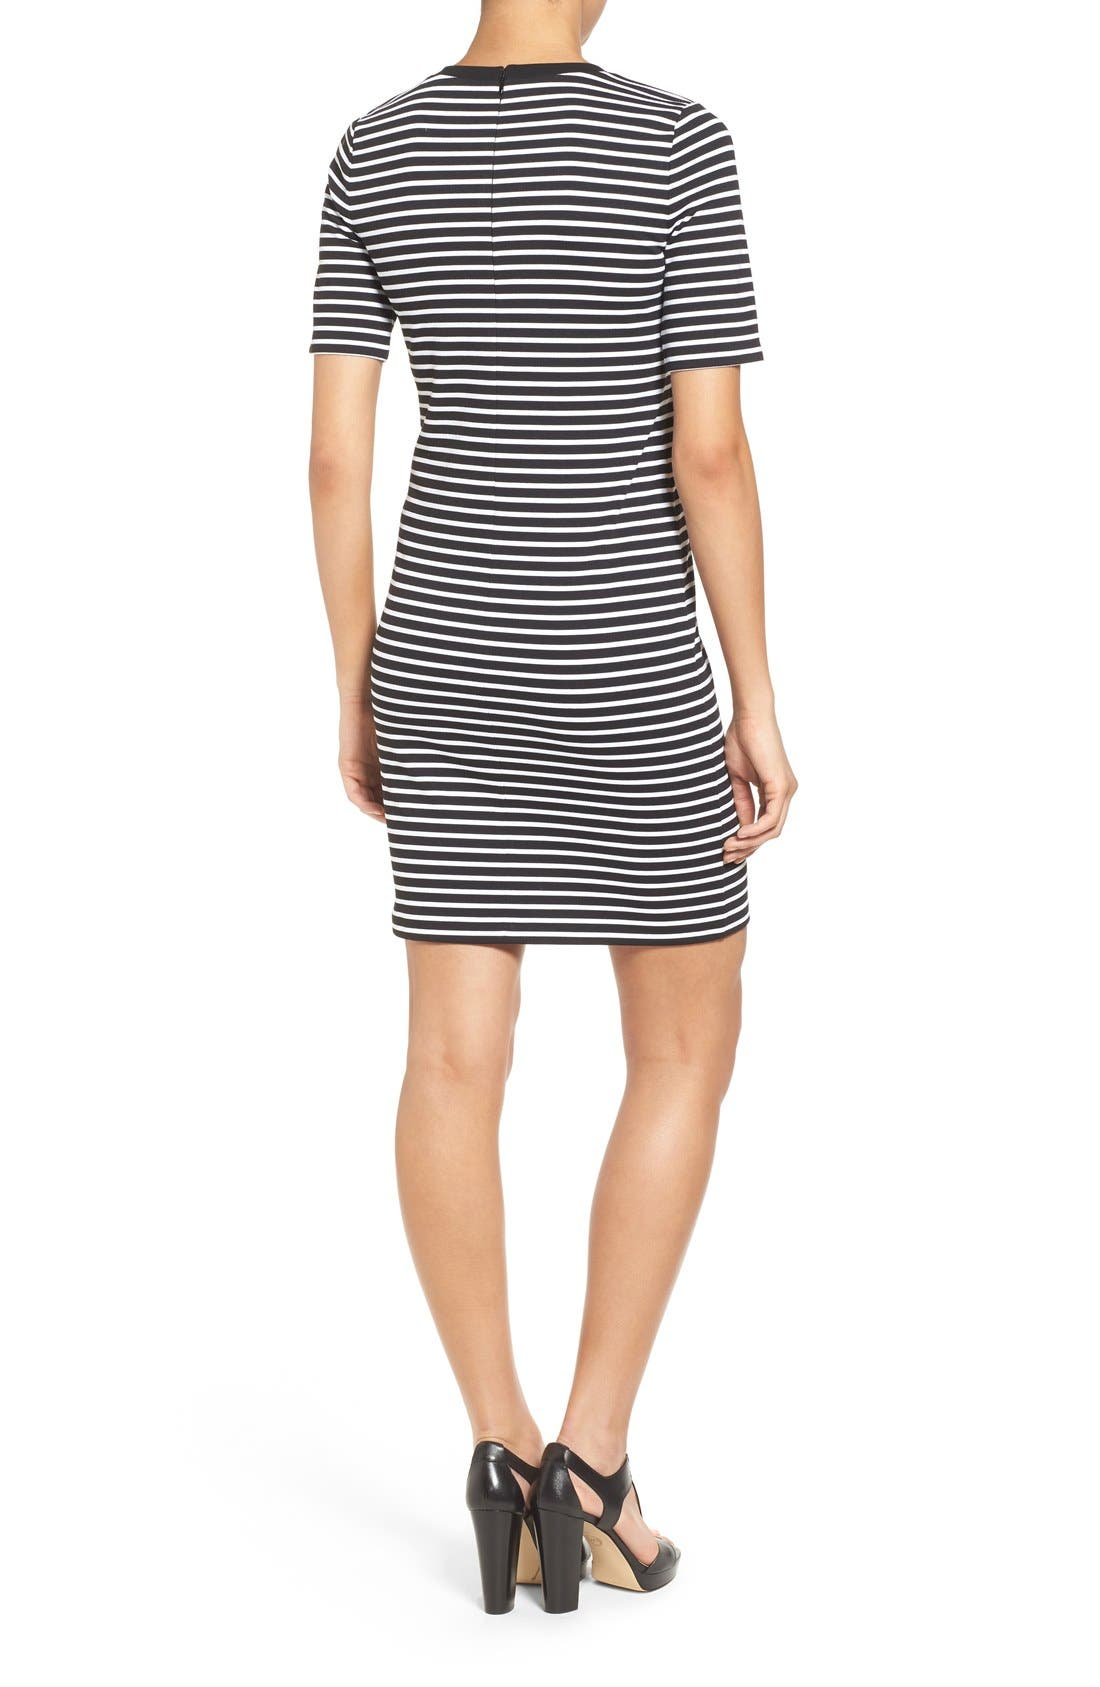 Alternate Image 2  - MICHAEL Michael Kors Crewneck T-Shirt Dress (Regular & Petite)